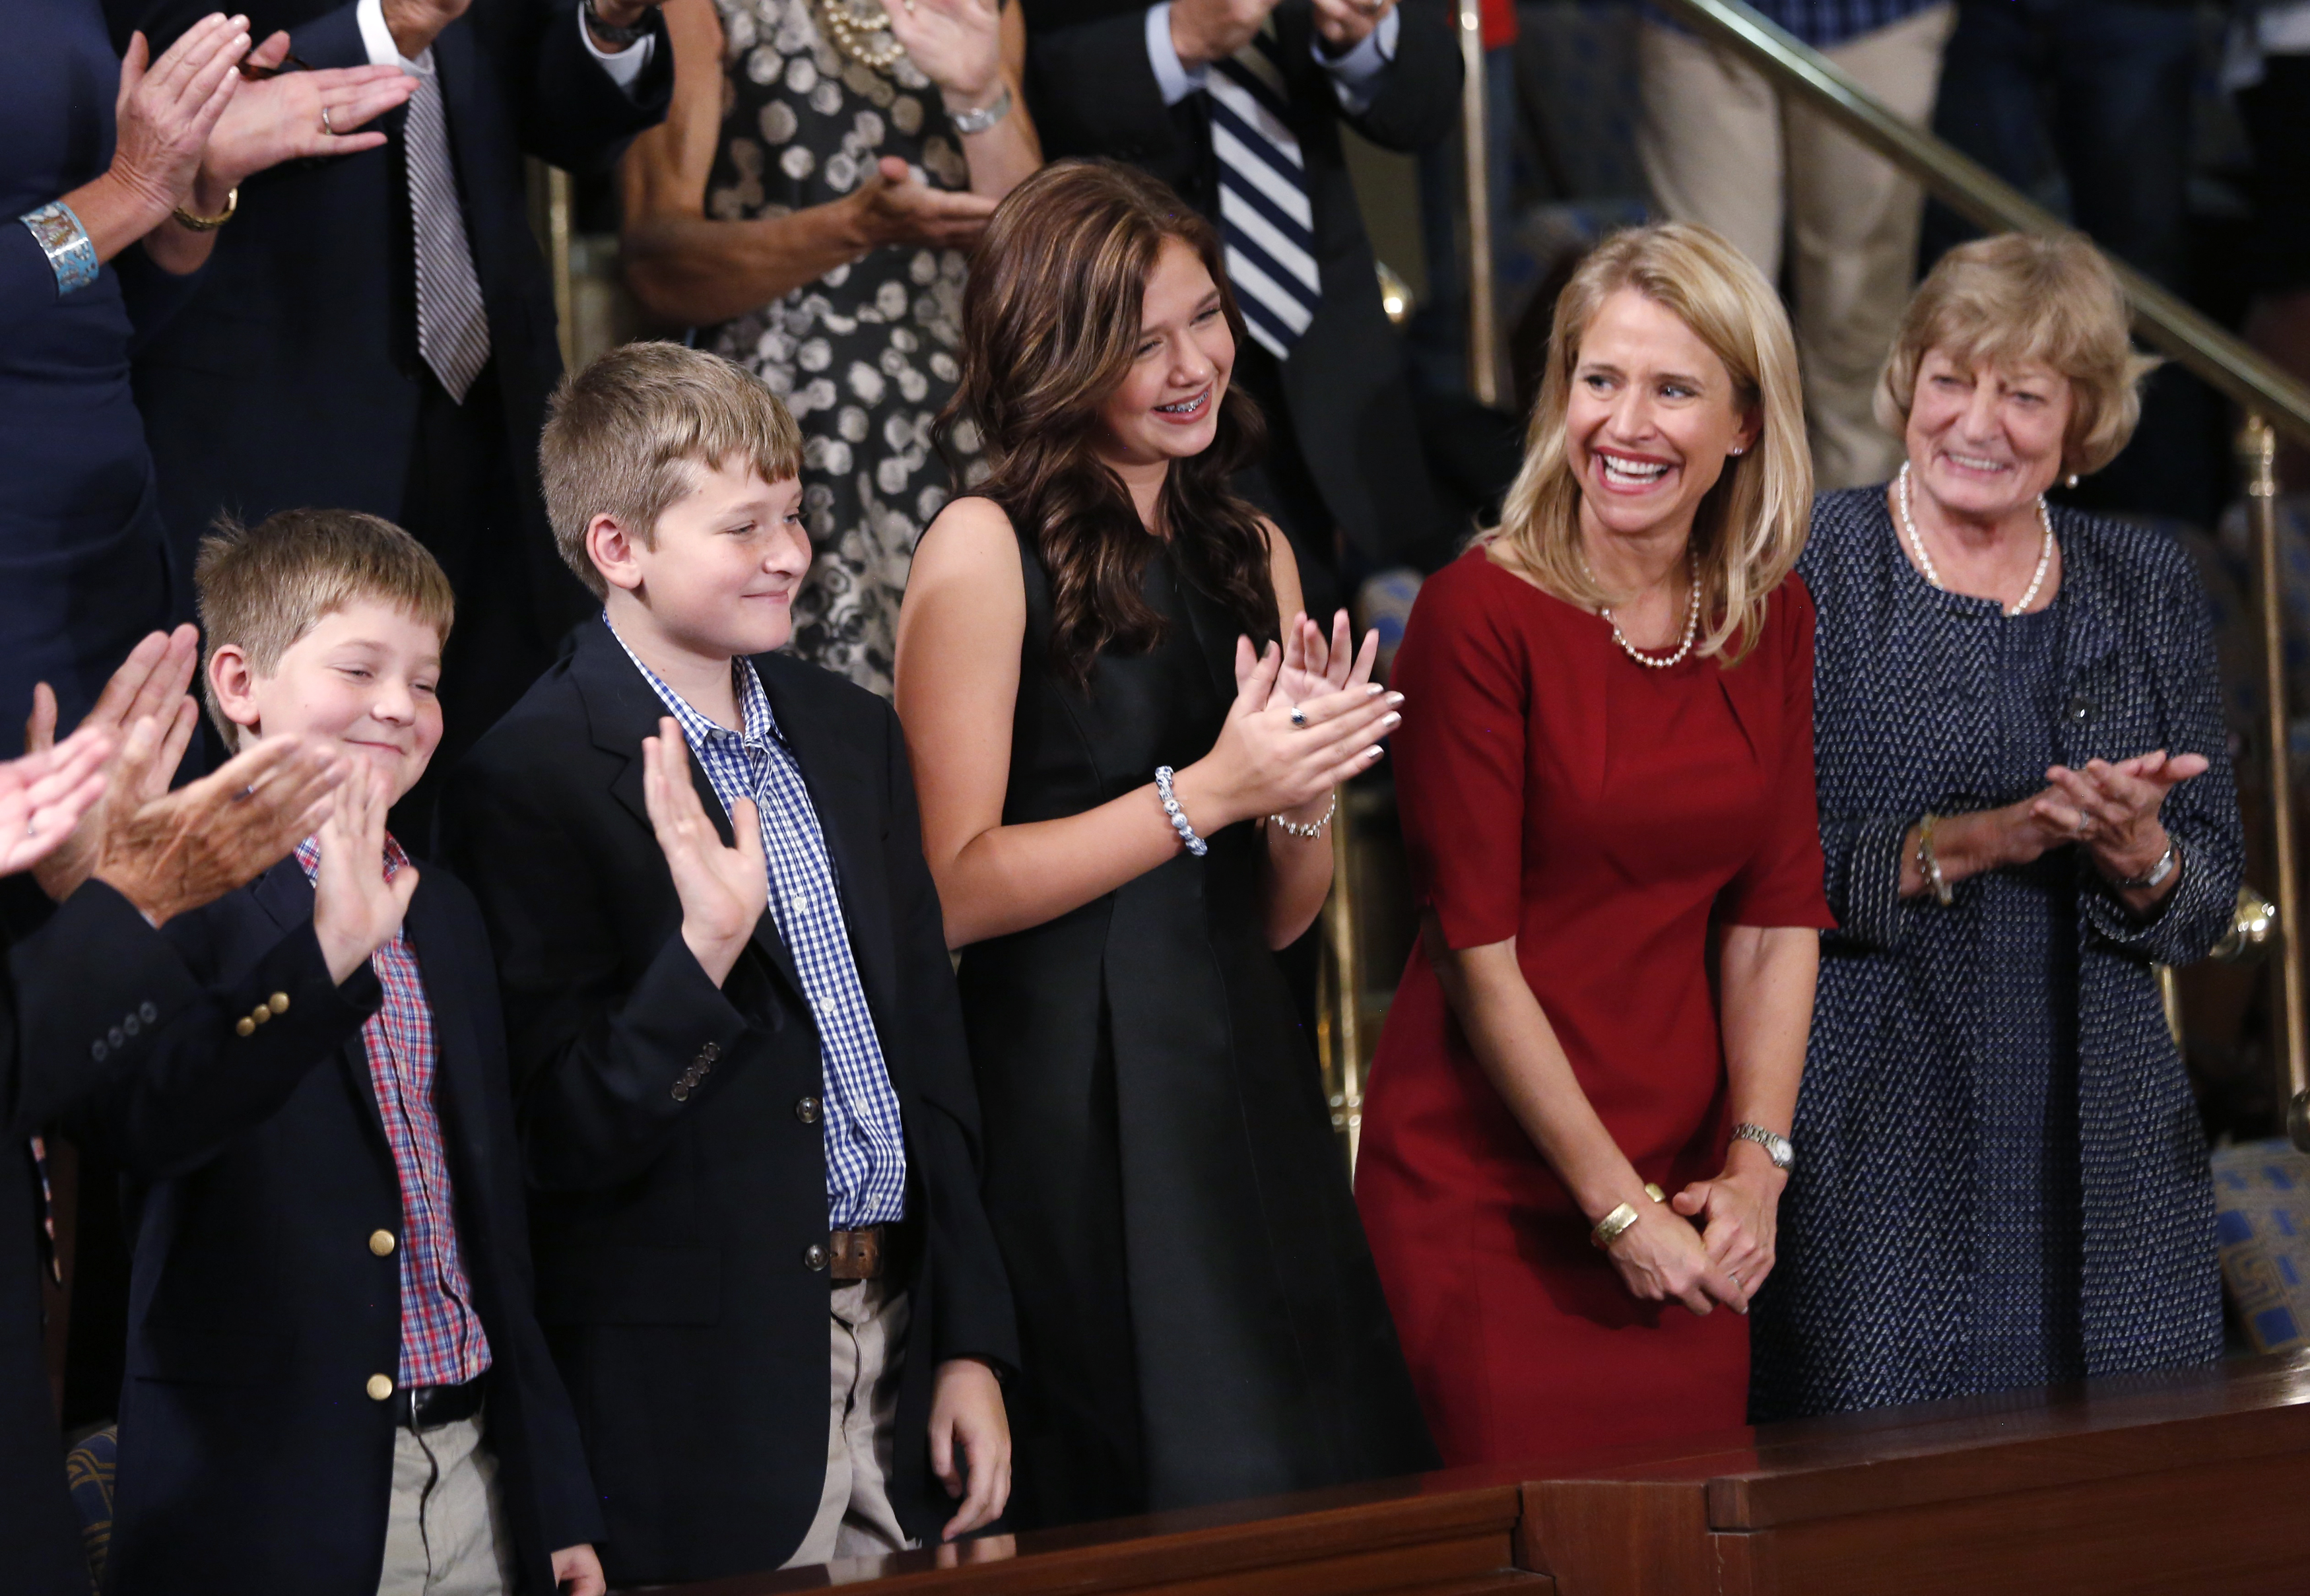 U.S. House Speaker Paul Ryan's family, from left, sons Sam and Charlie, daughter Liza, wife Janna and mother Elizabeth, wave to him from the gallery during the election in the House Chamber in Washington, Oct. 29, 2015.